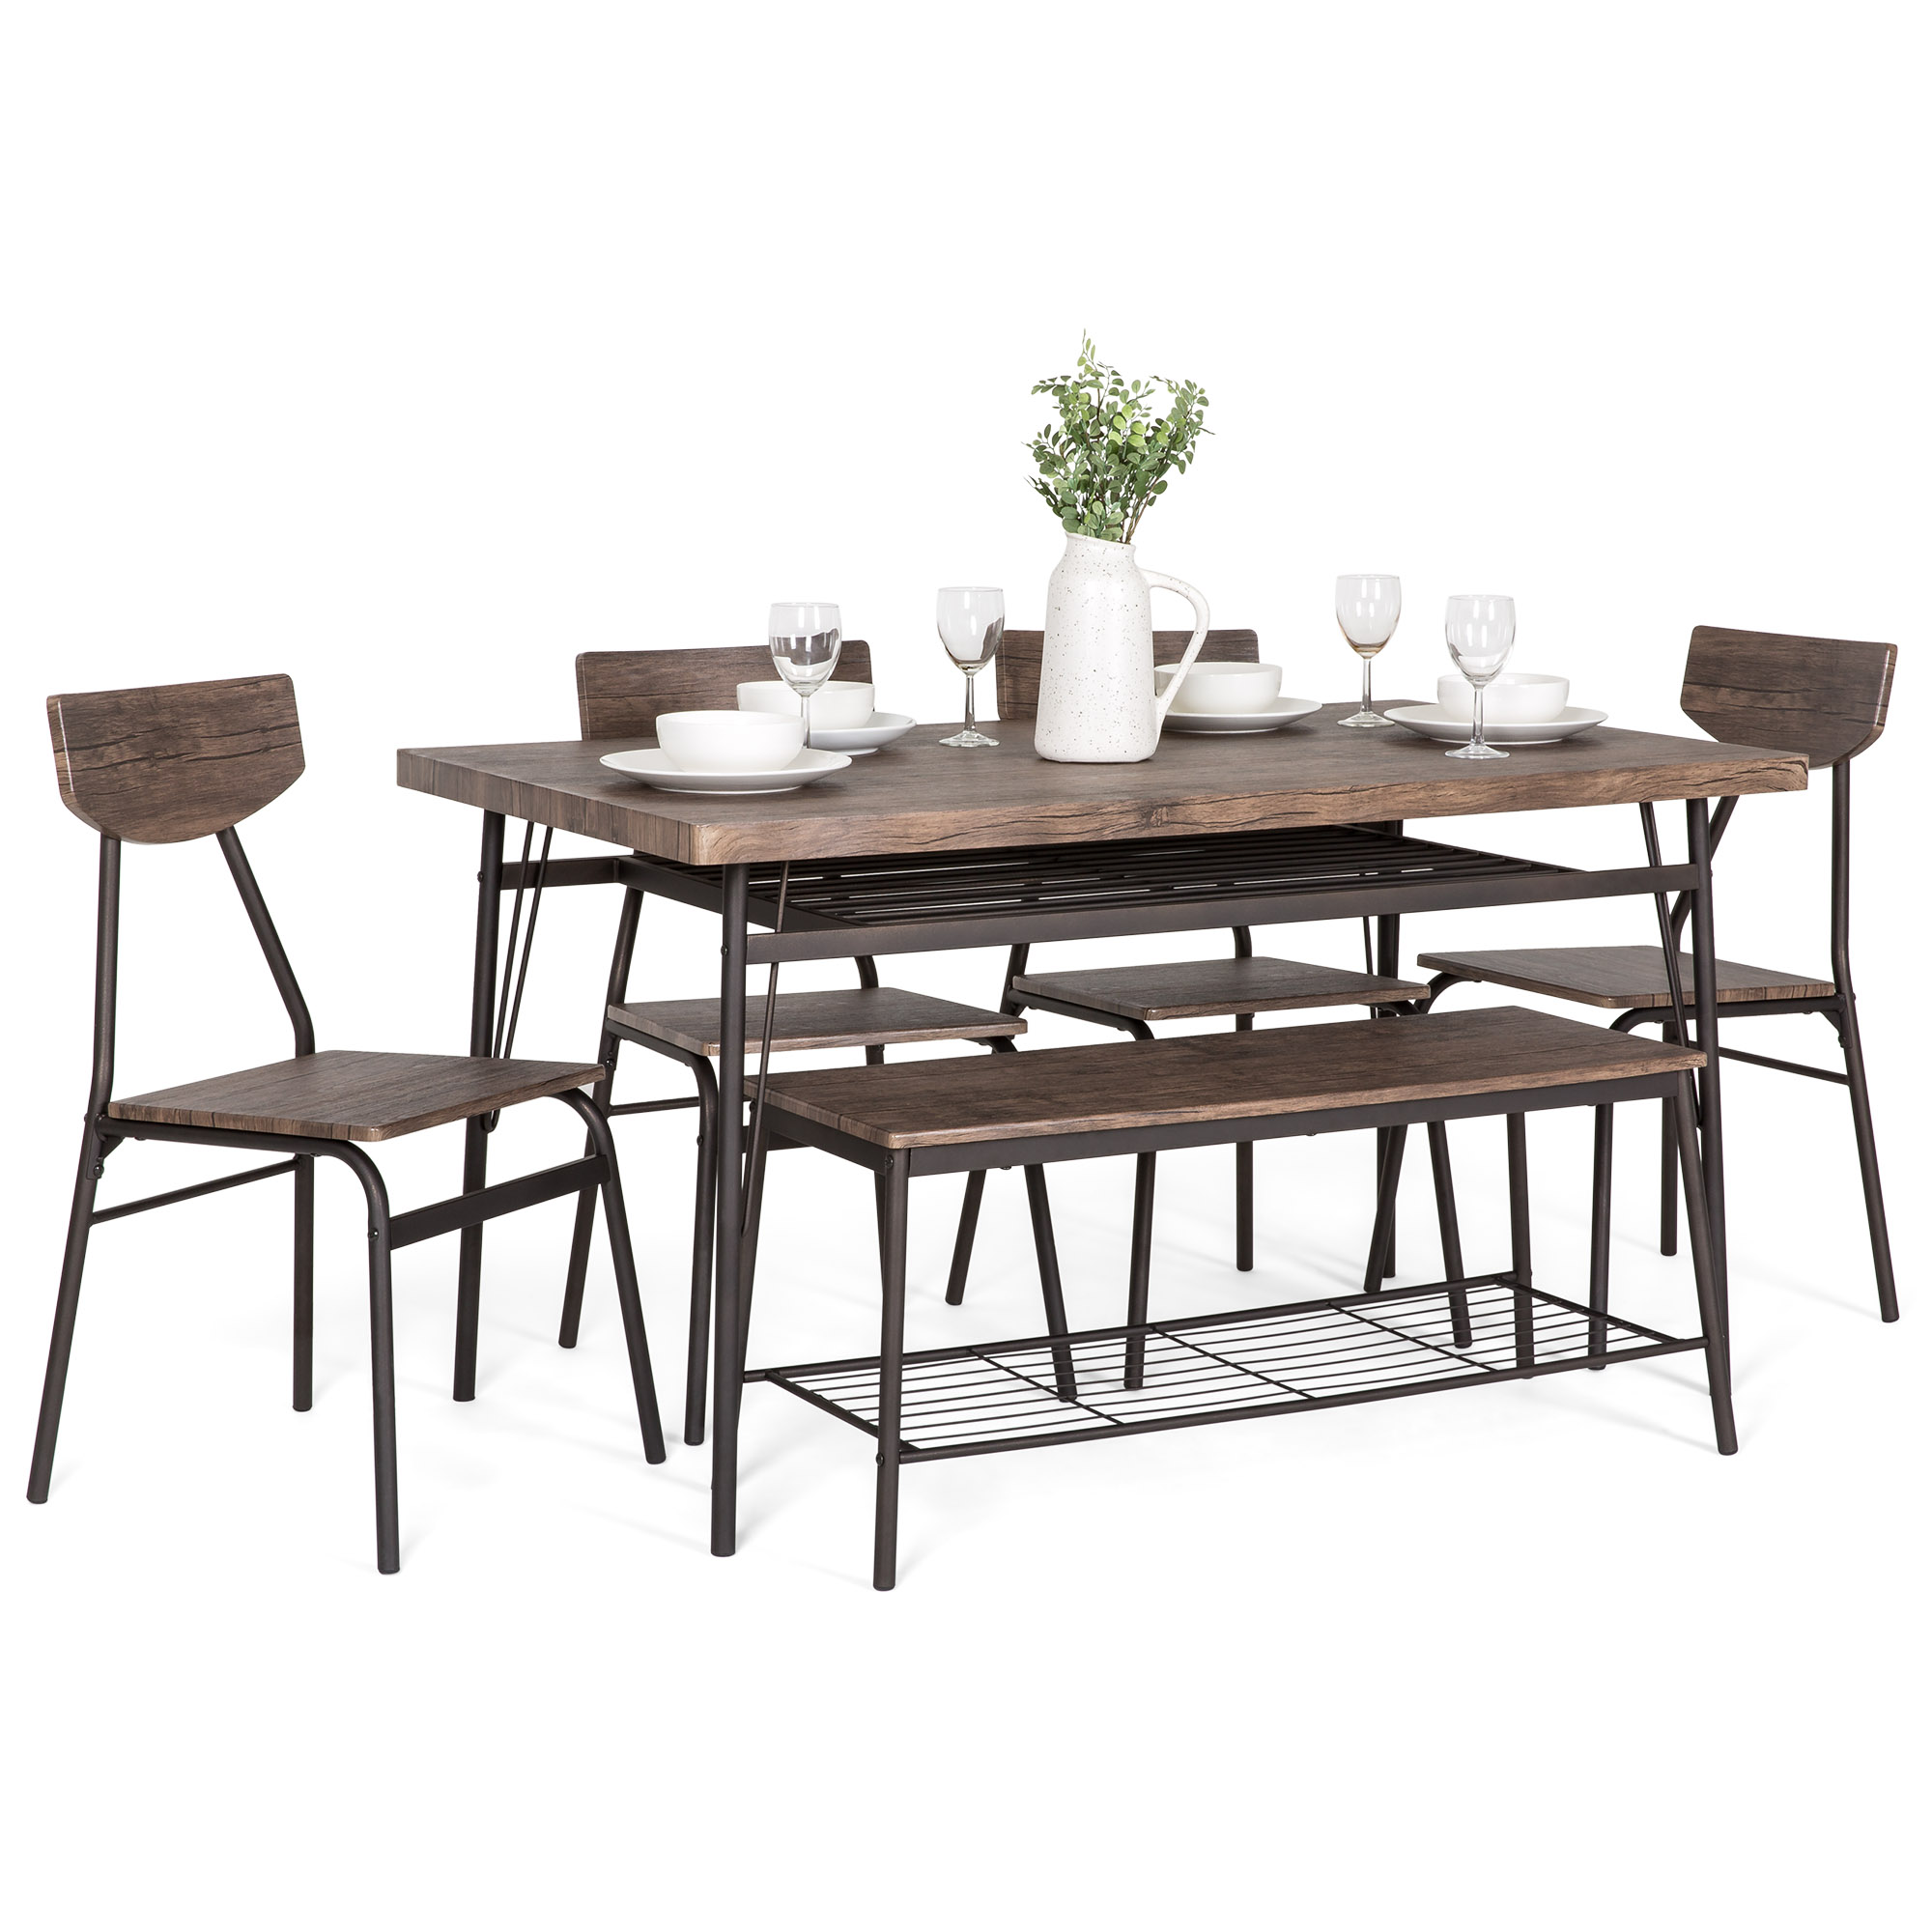 Dining Table Storage Bench: Best Choice Products 6-Piece 55in Modern Home Dining Set W